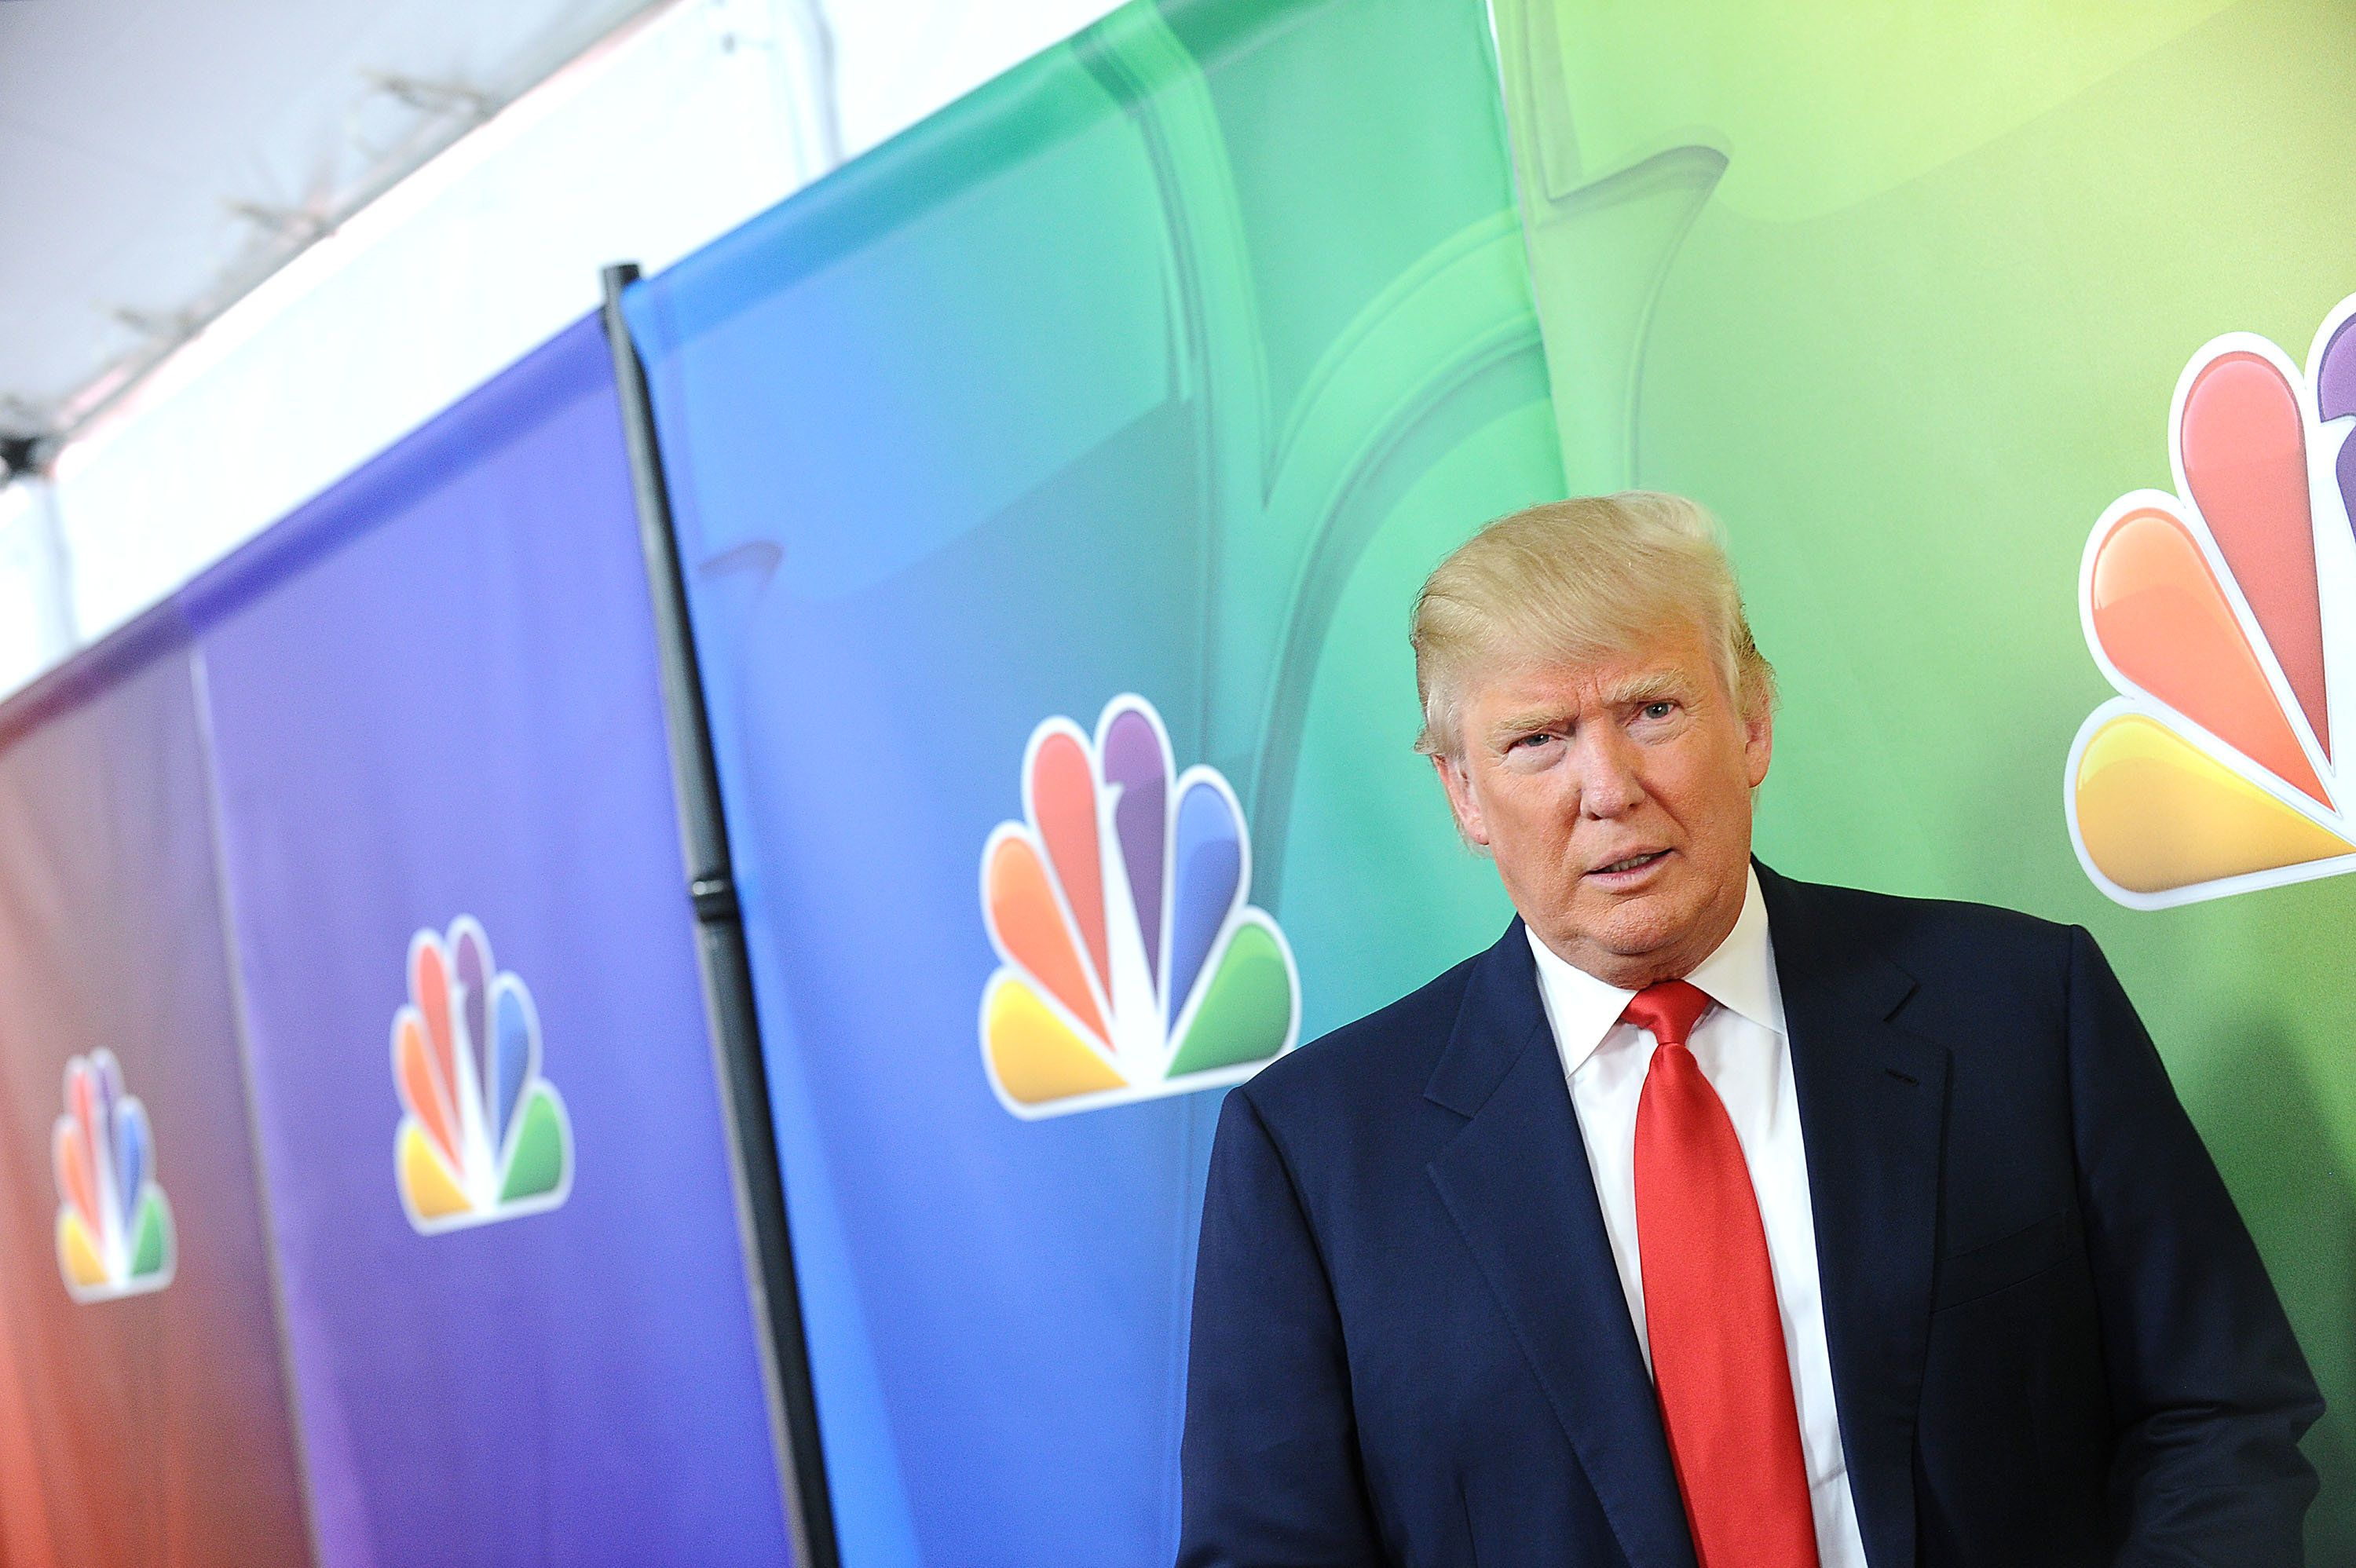 PASADENA, CA - JANUARY 16:  Donald Trump attends the NBCUniversal 2015 press tour at The Langham Huntington Hotel and Spa on January 16, 2015 in Pasadena, California.  (Photo by Jason LaVeris/FilmMagic)